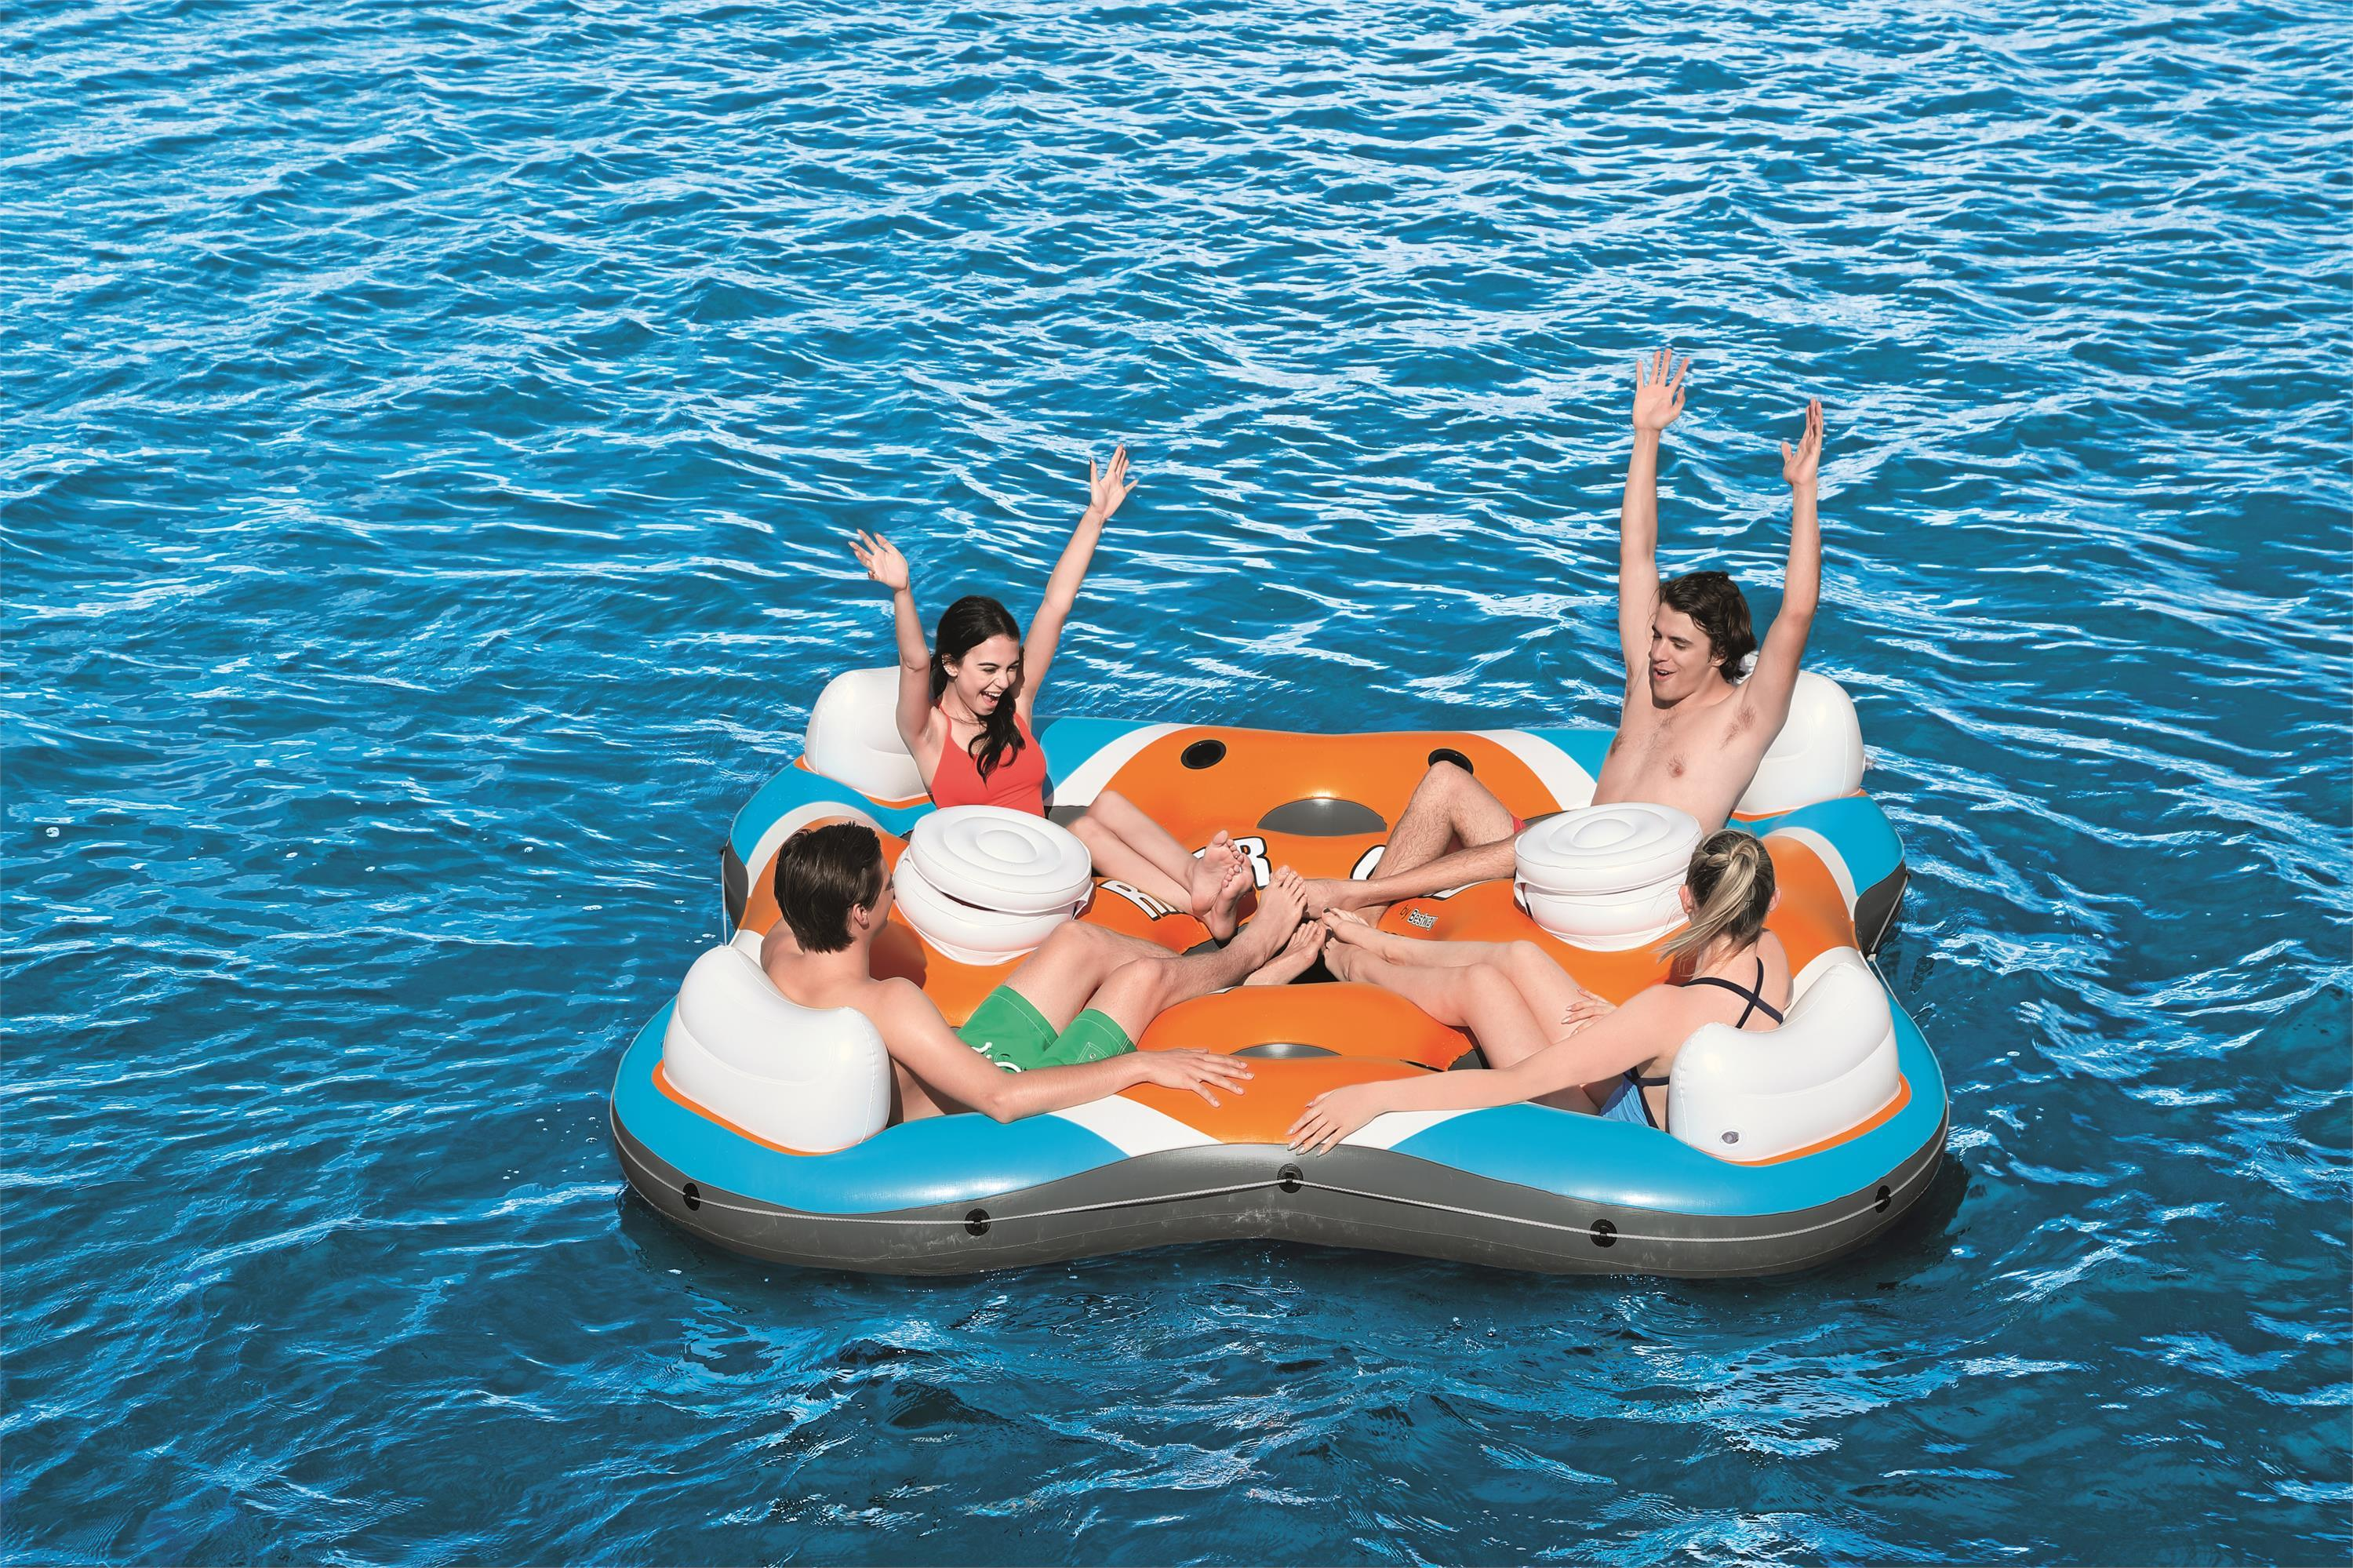 Four-person floating island